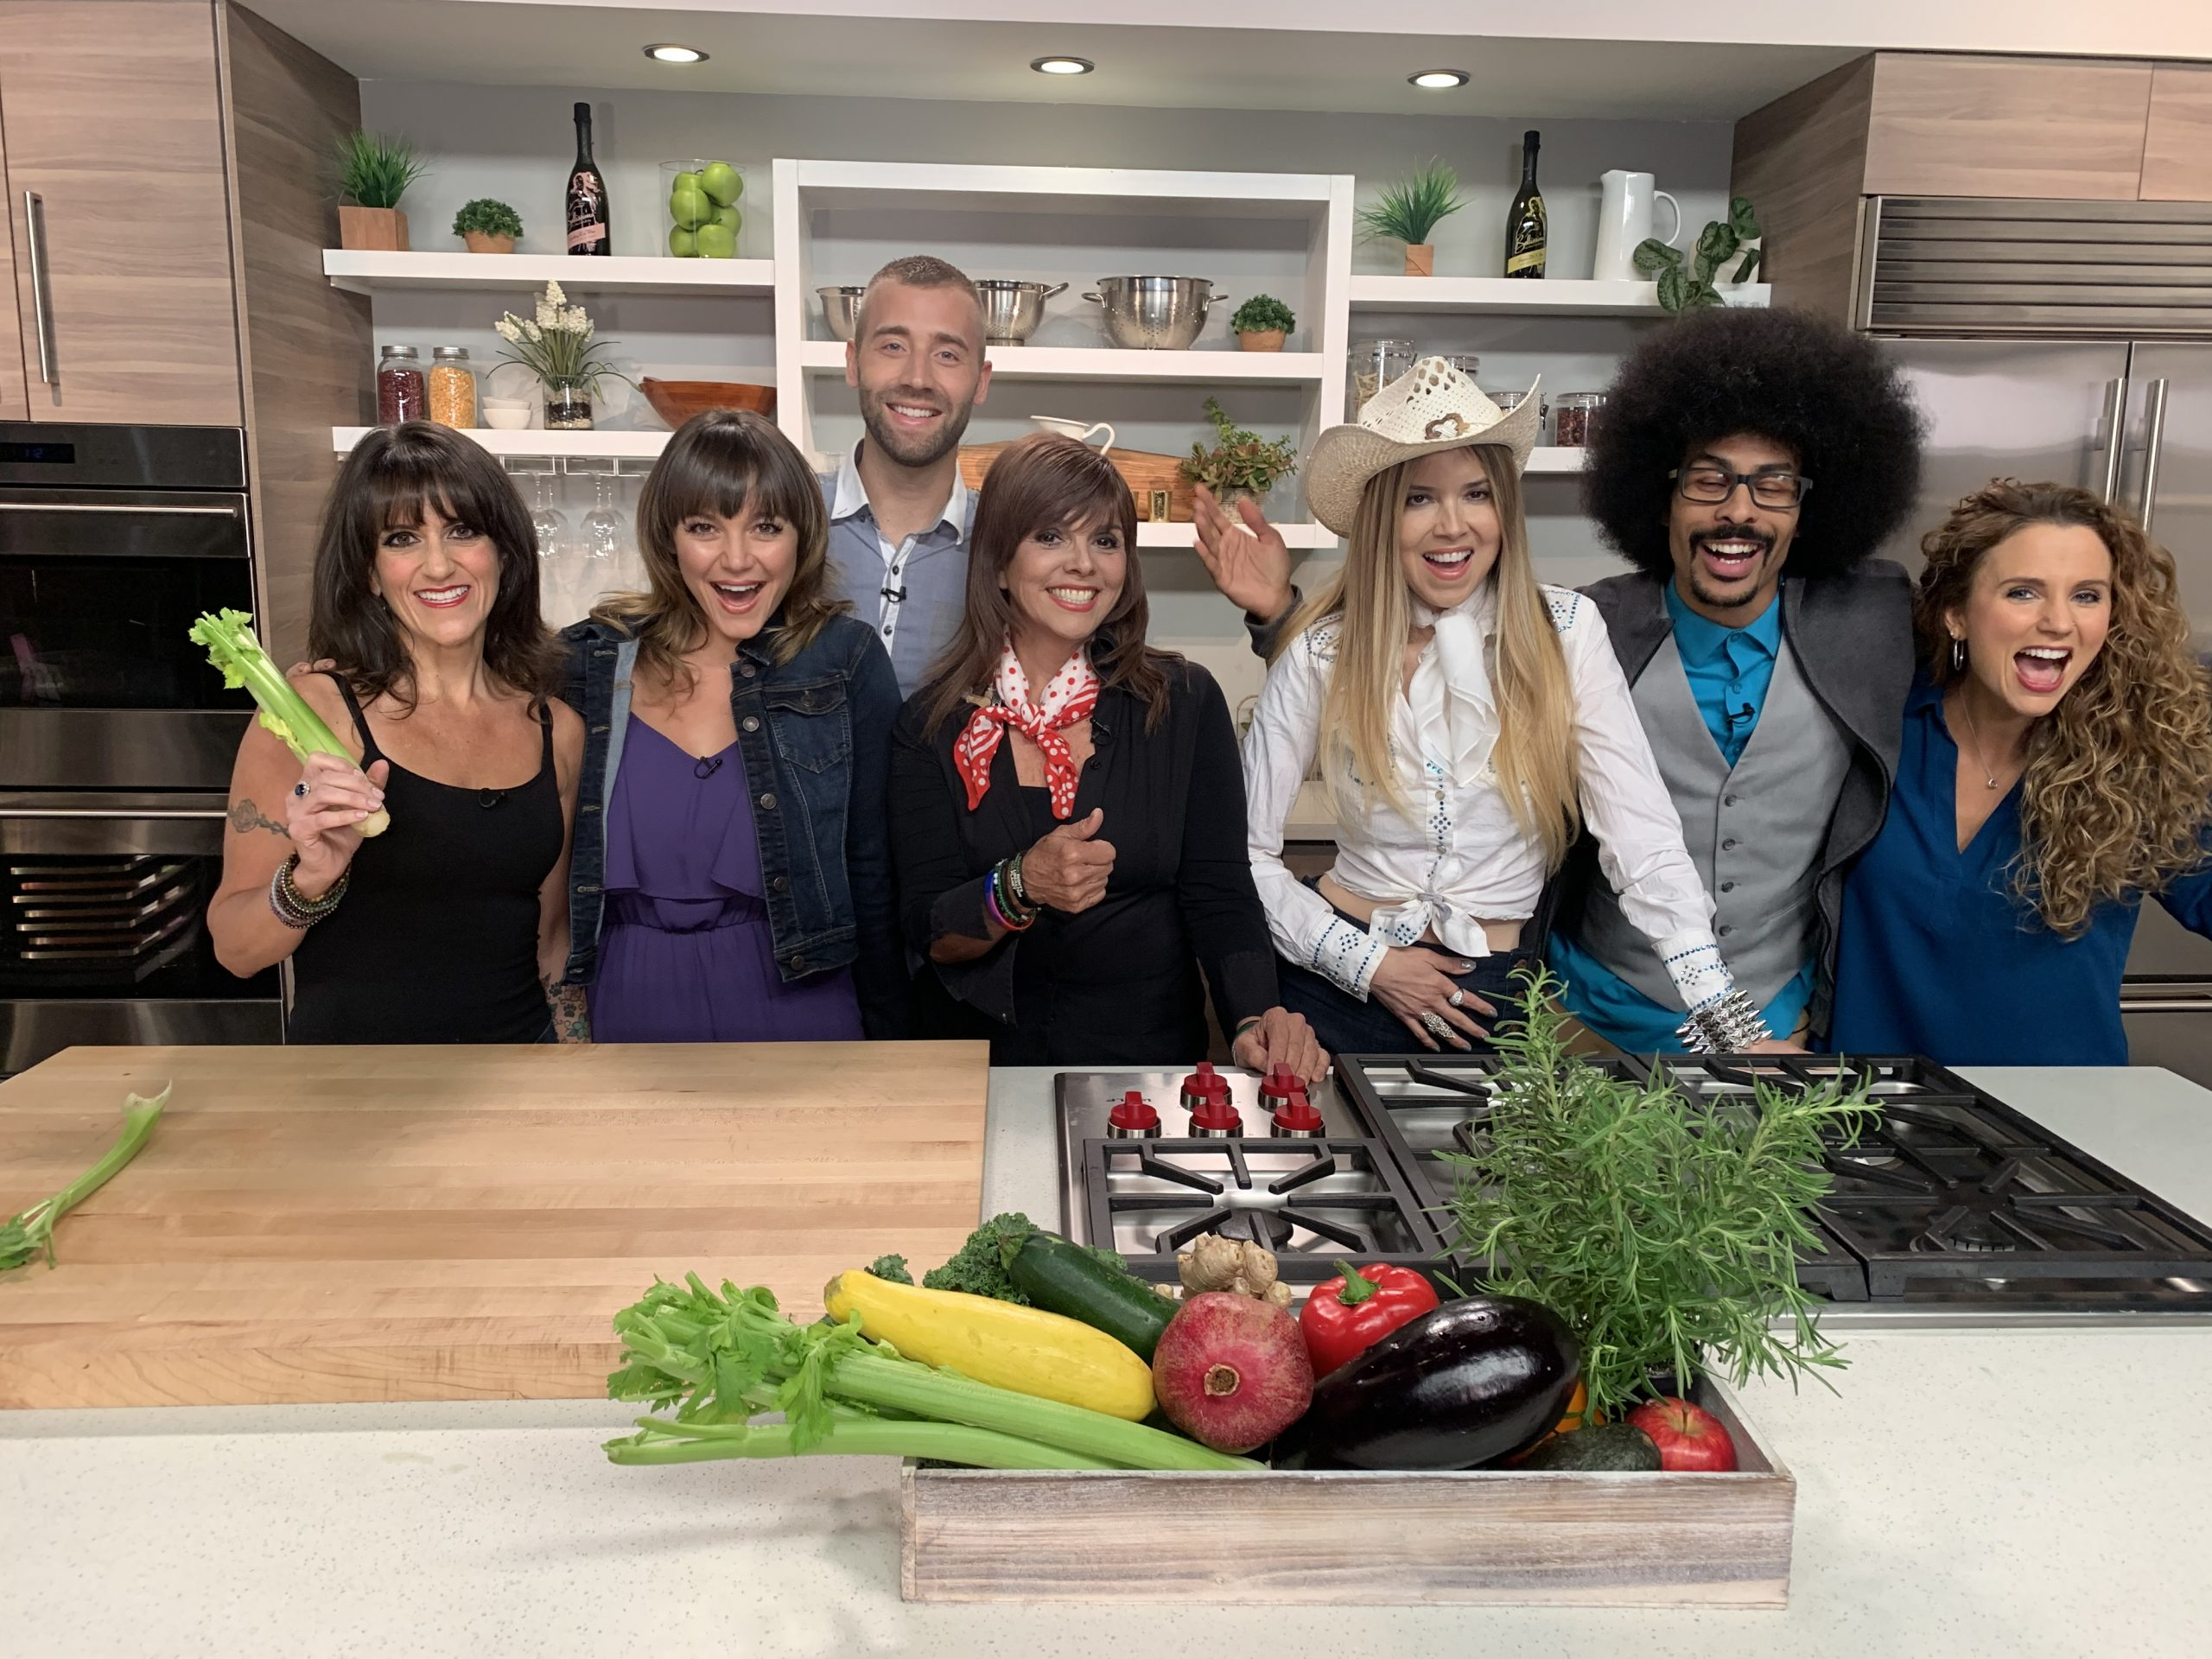 Vegan cooking show, New Day New Chef